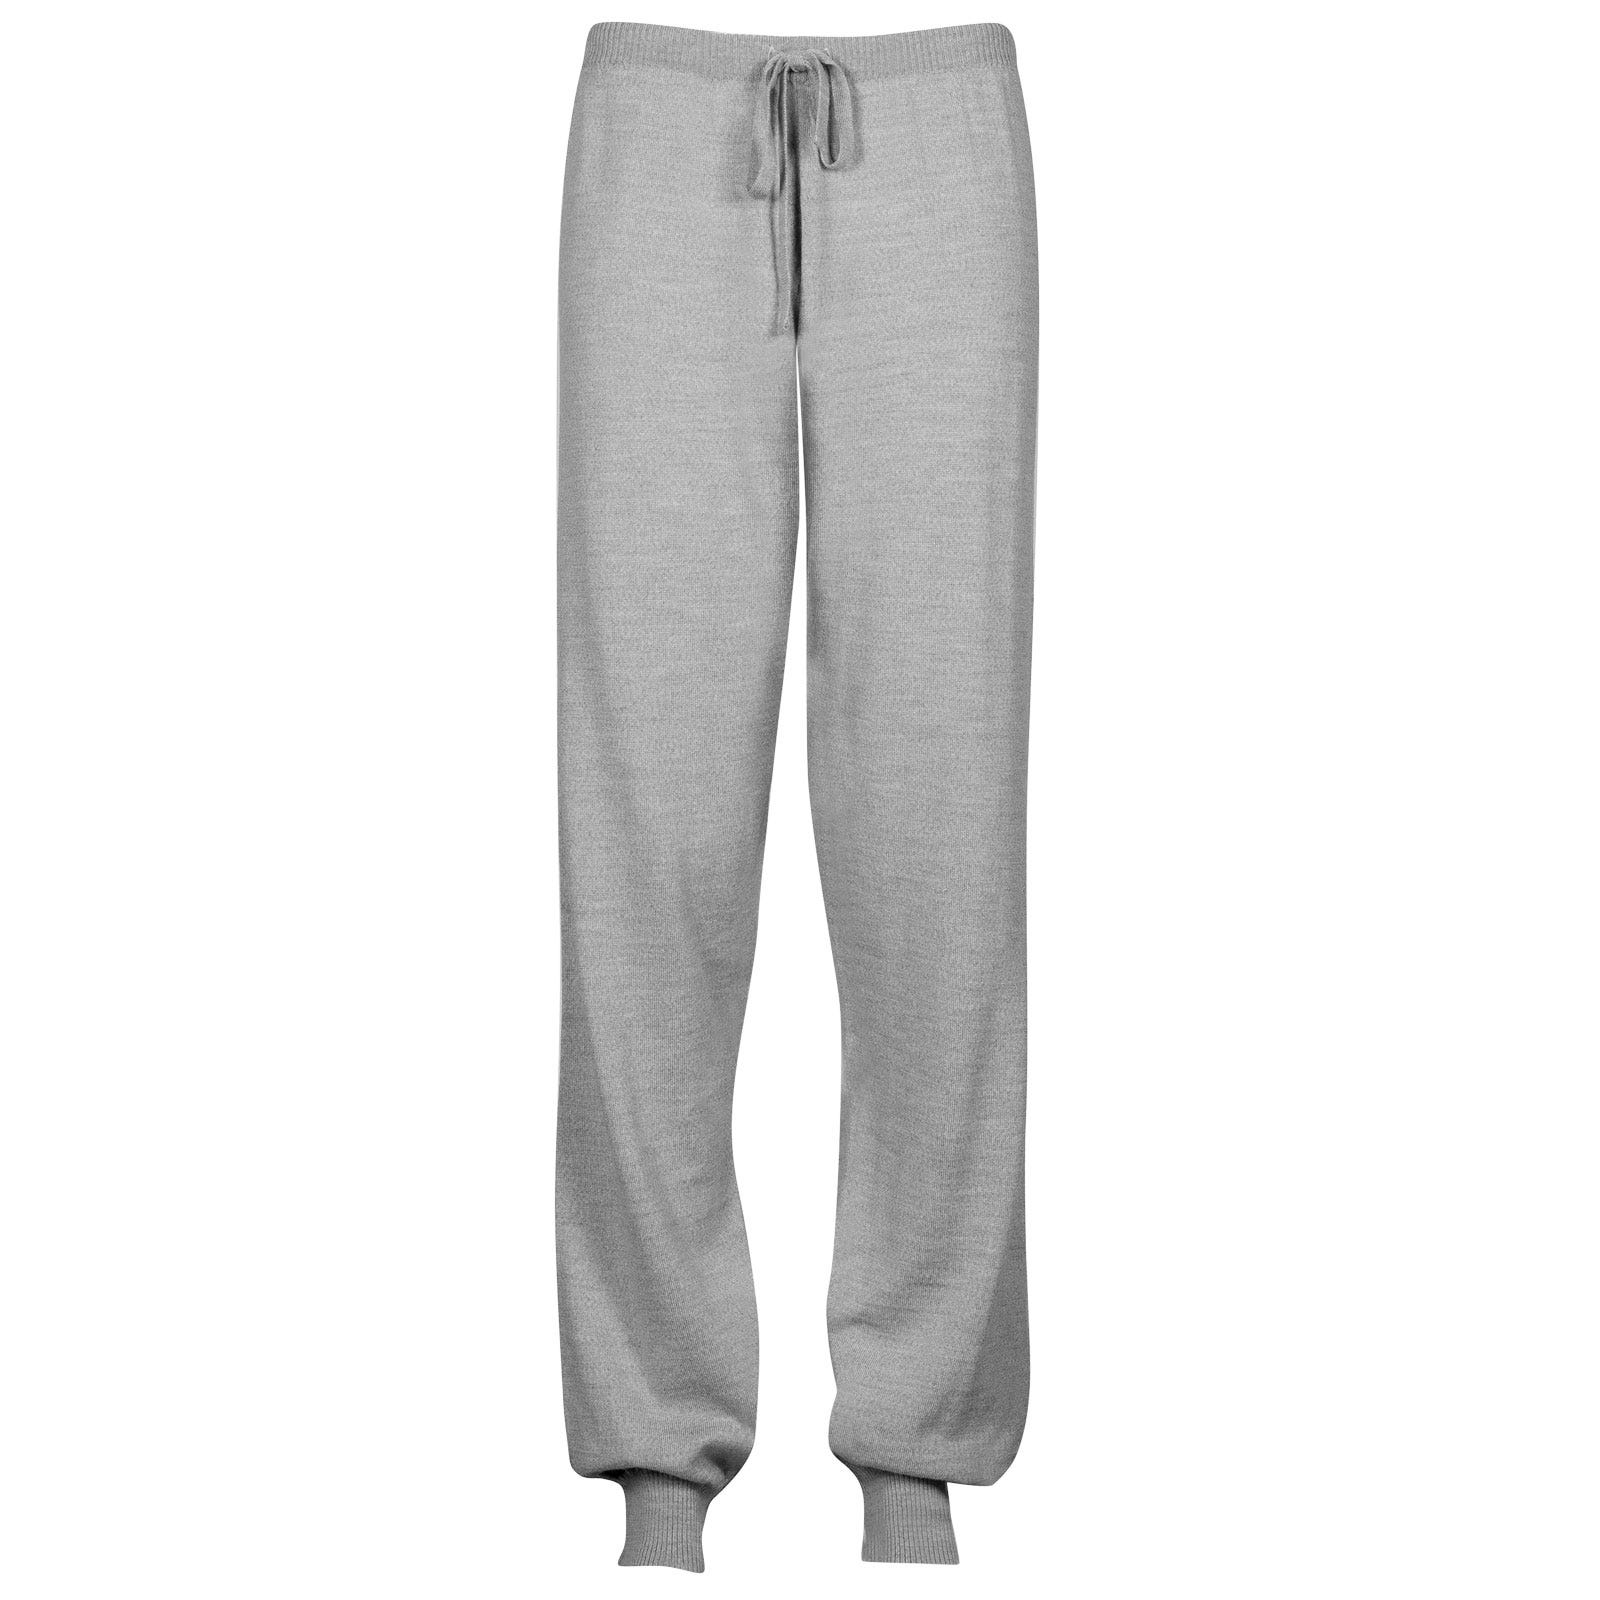 John Smedley Lock Merino Wool Trouser in Bardot Grey-M